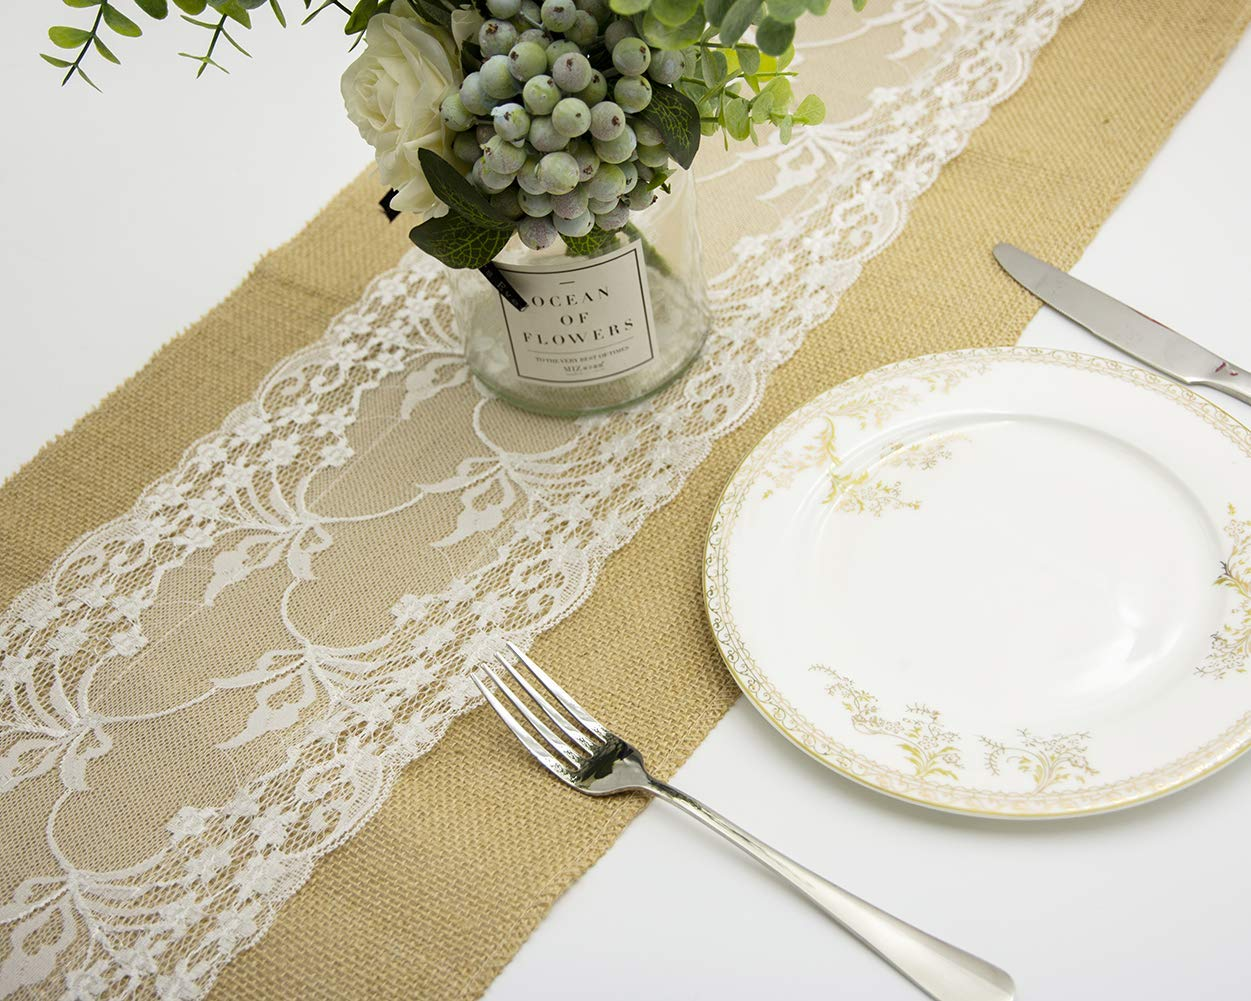 Convetu Table Runner, TR05 Rustic Long Lace Burlap Runners for Table 72 108 inch for Wedding Party Outdoor with Different Lace Pattern Design (108 inch, Type 4)